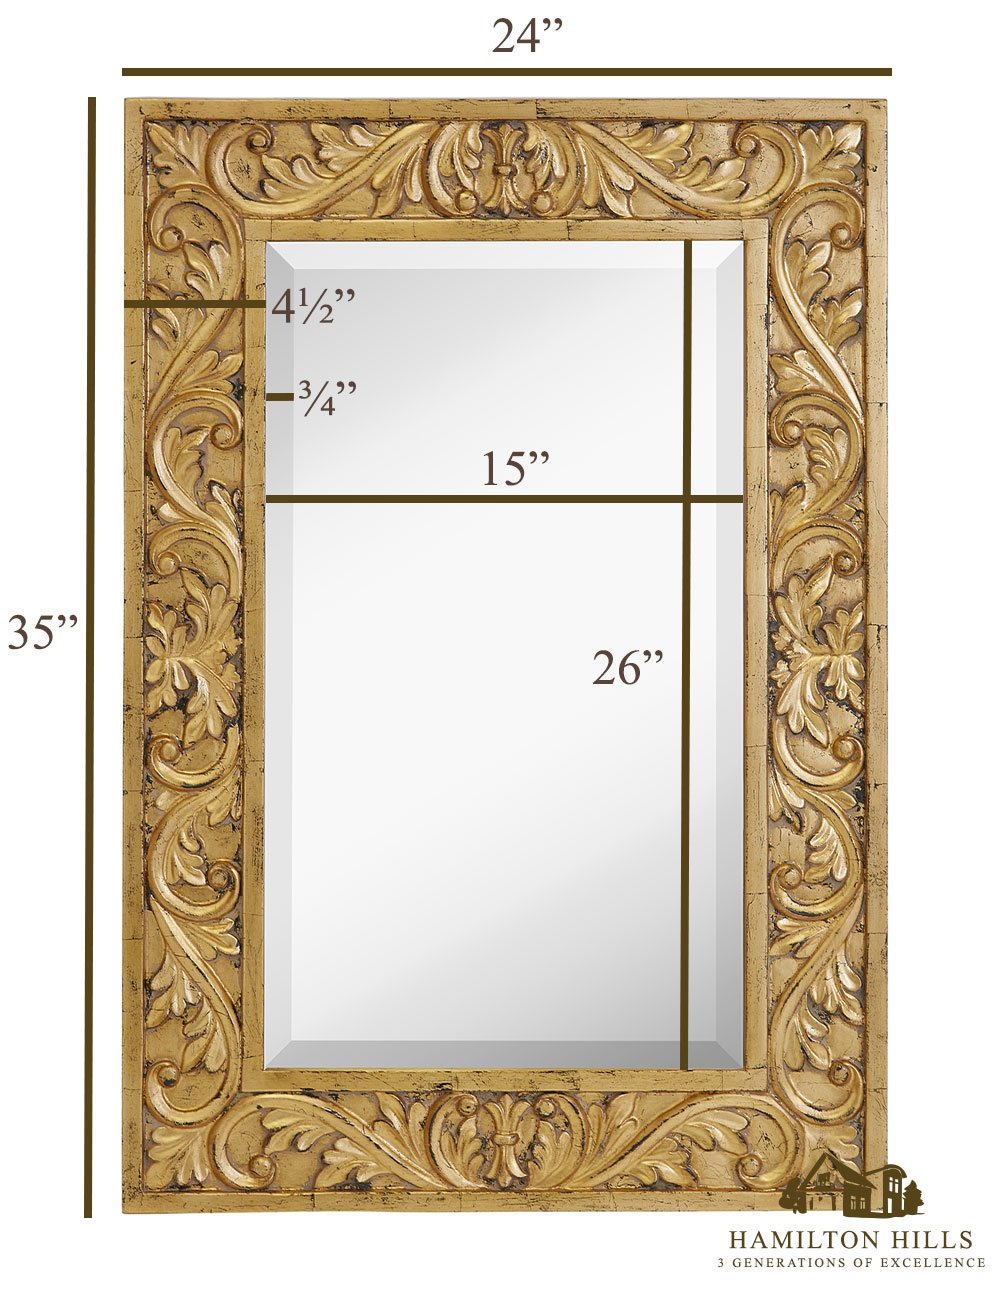 Hamilton Hills Large Gold Antique Inlay Baroque Styled Framed Mirror ...